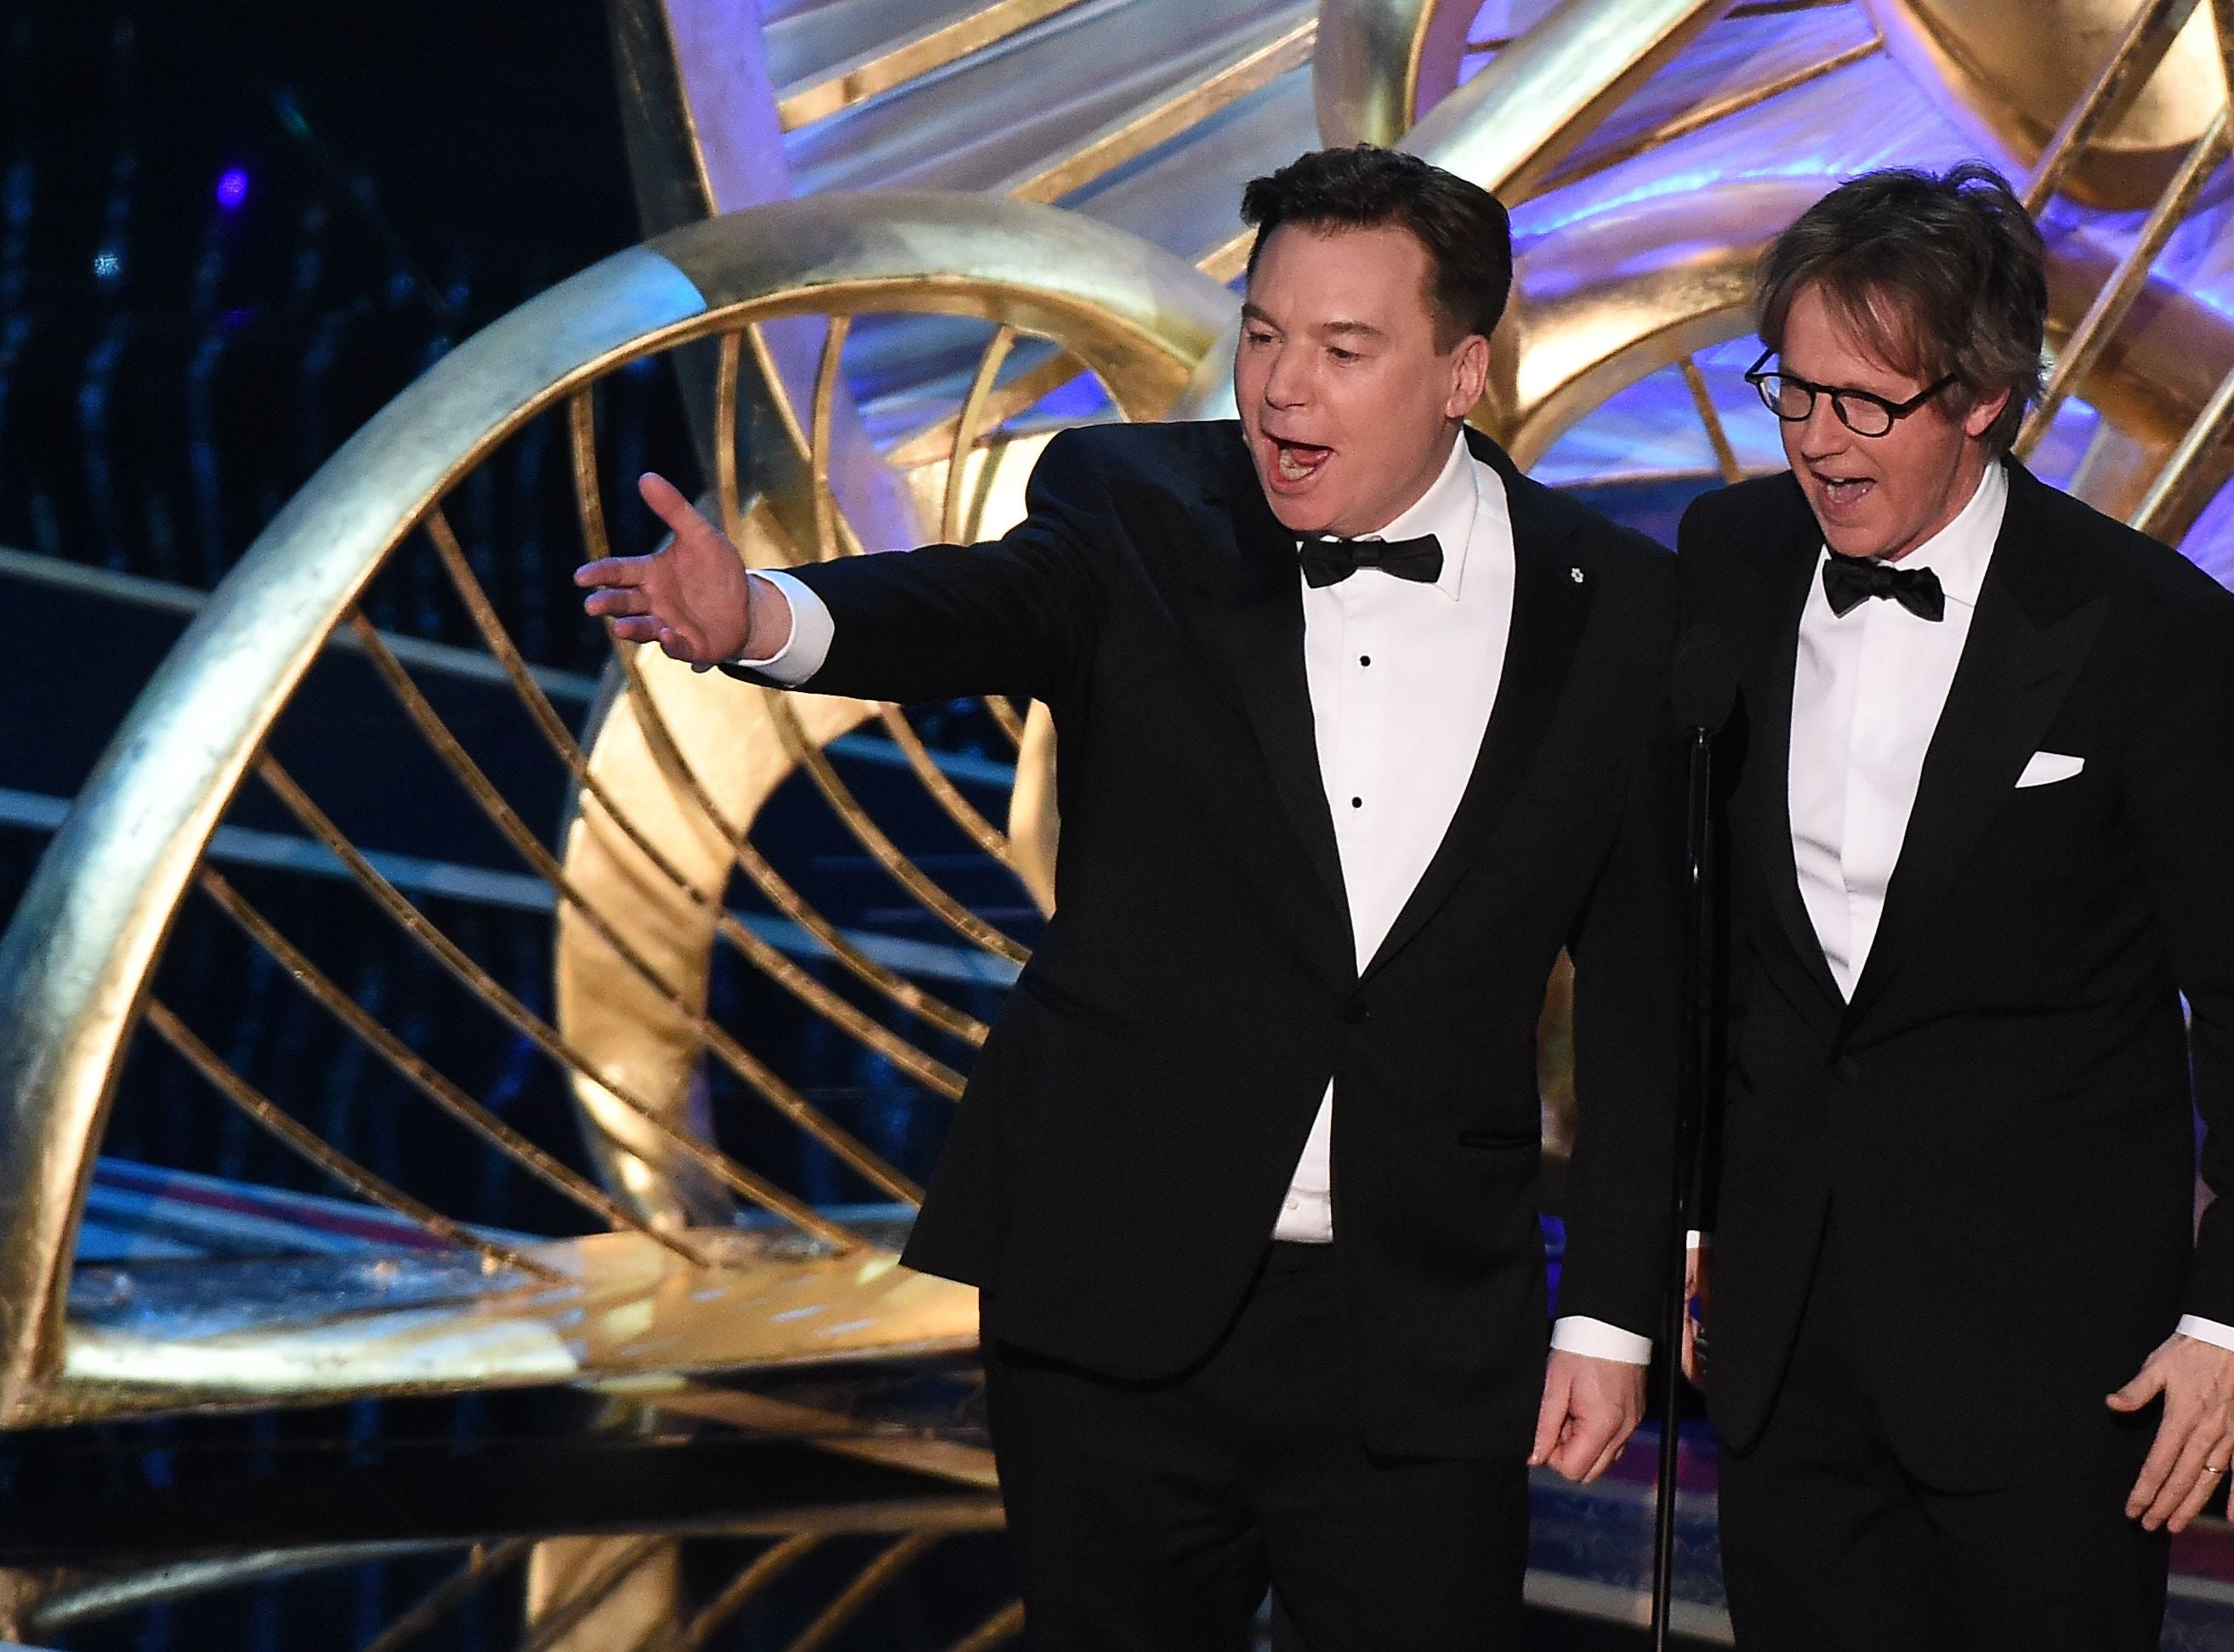 Comedian Mike Myers and Dana Carvey present an award during the 91st Annual Academy Awards.